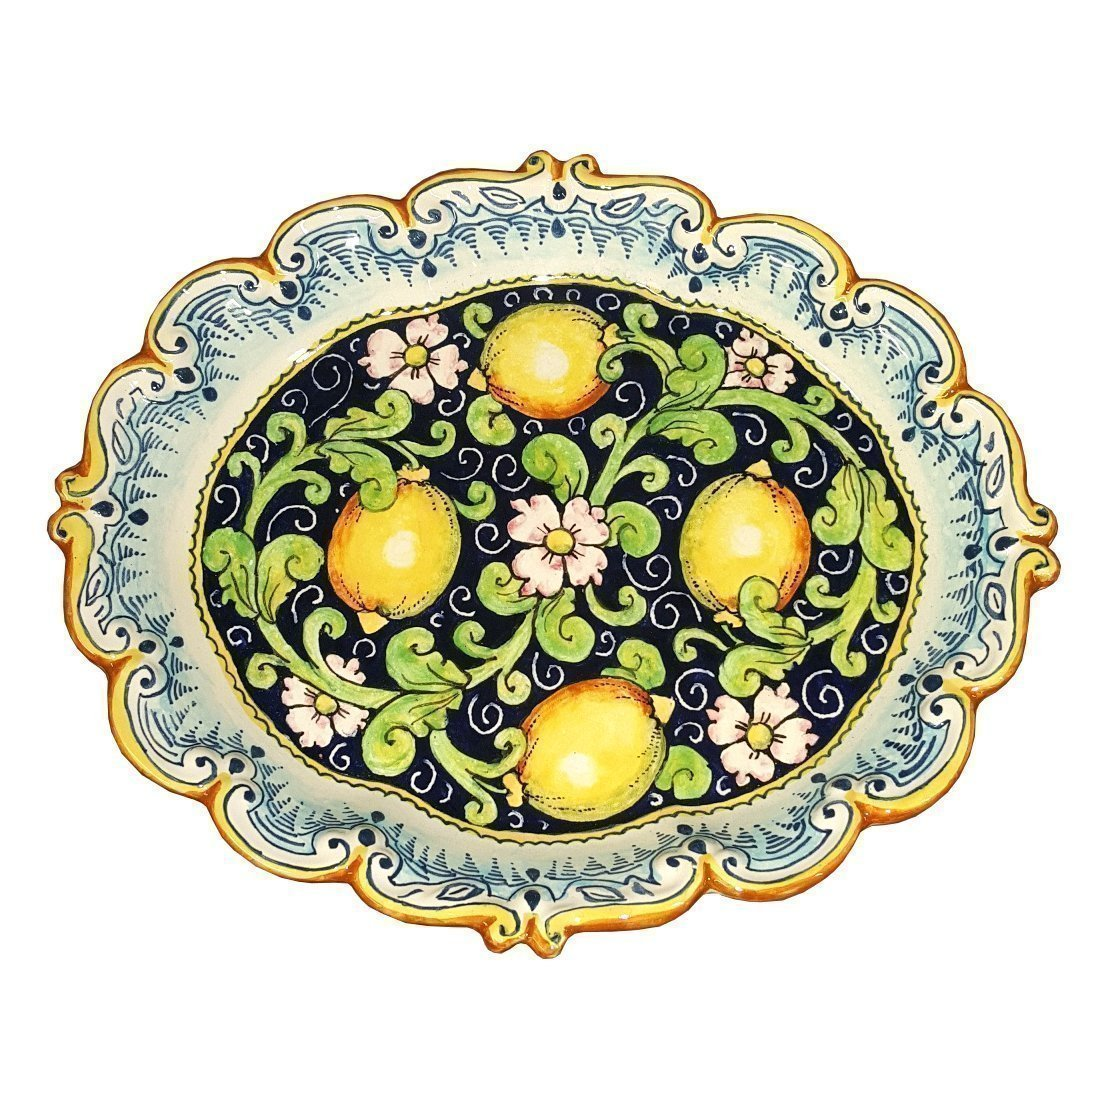 CERAMICHE D'ARTE PARRINI - Italian Ceramic Tray Serving Plate Lemons Art Pottery Paint Made in ITALY Tuscan